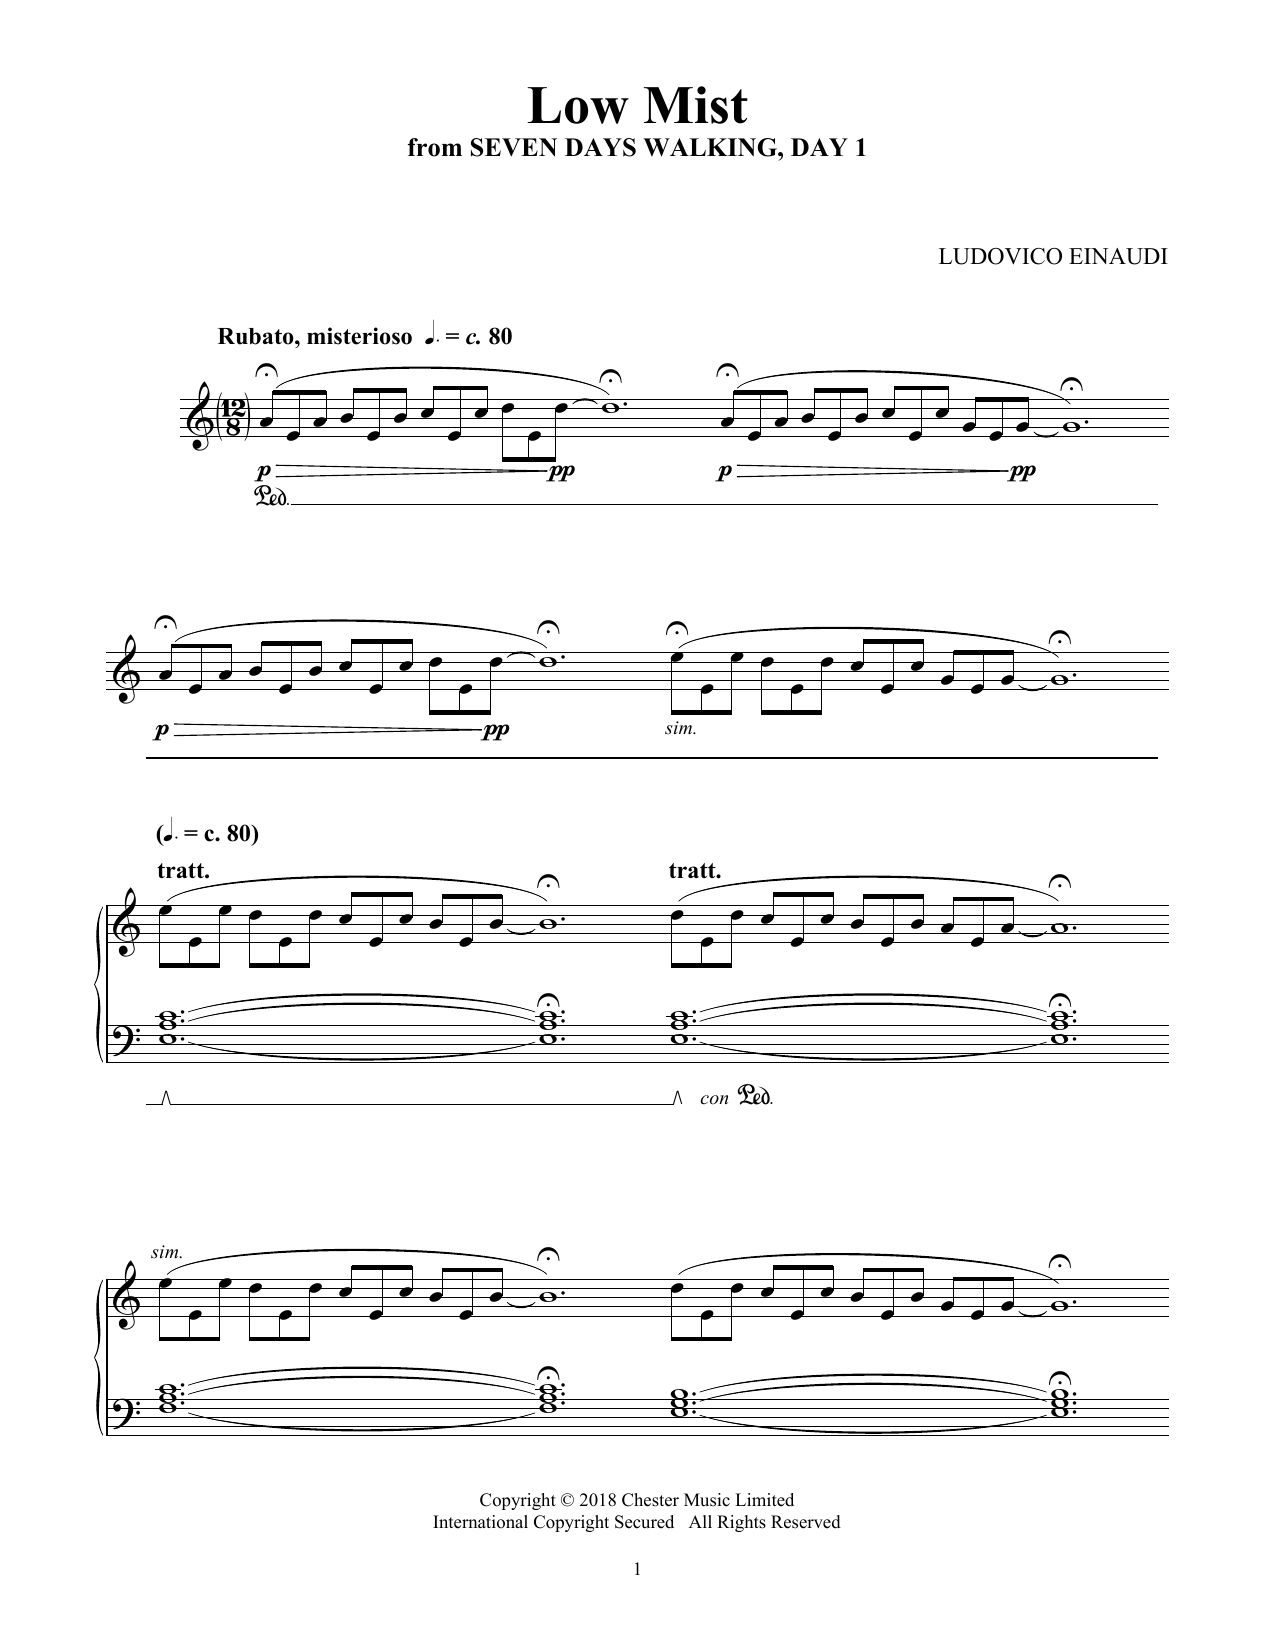 Ludovico Einaudi Low Mist (from Seven Days Walking: Day 1) sheet music notes and chords